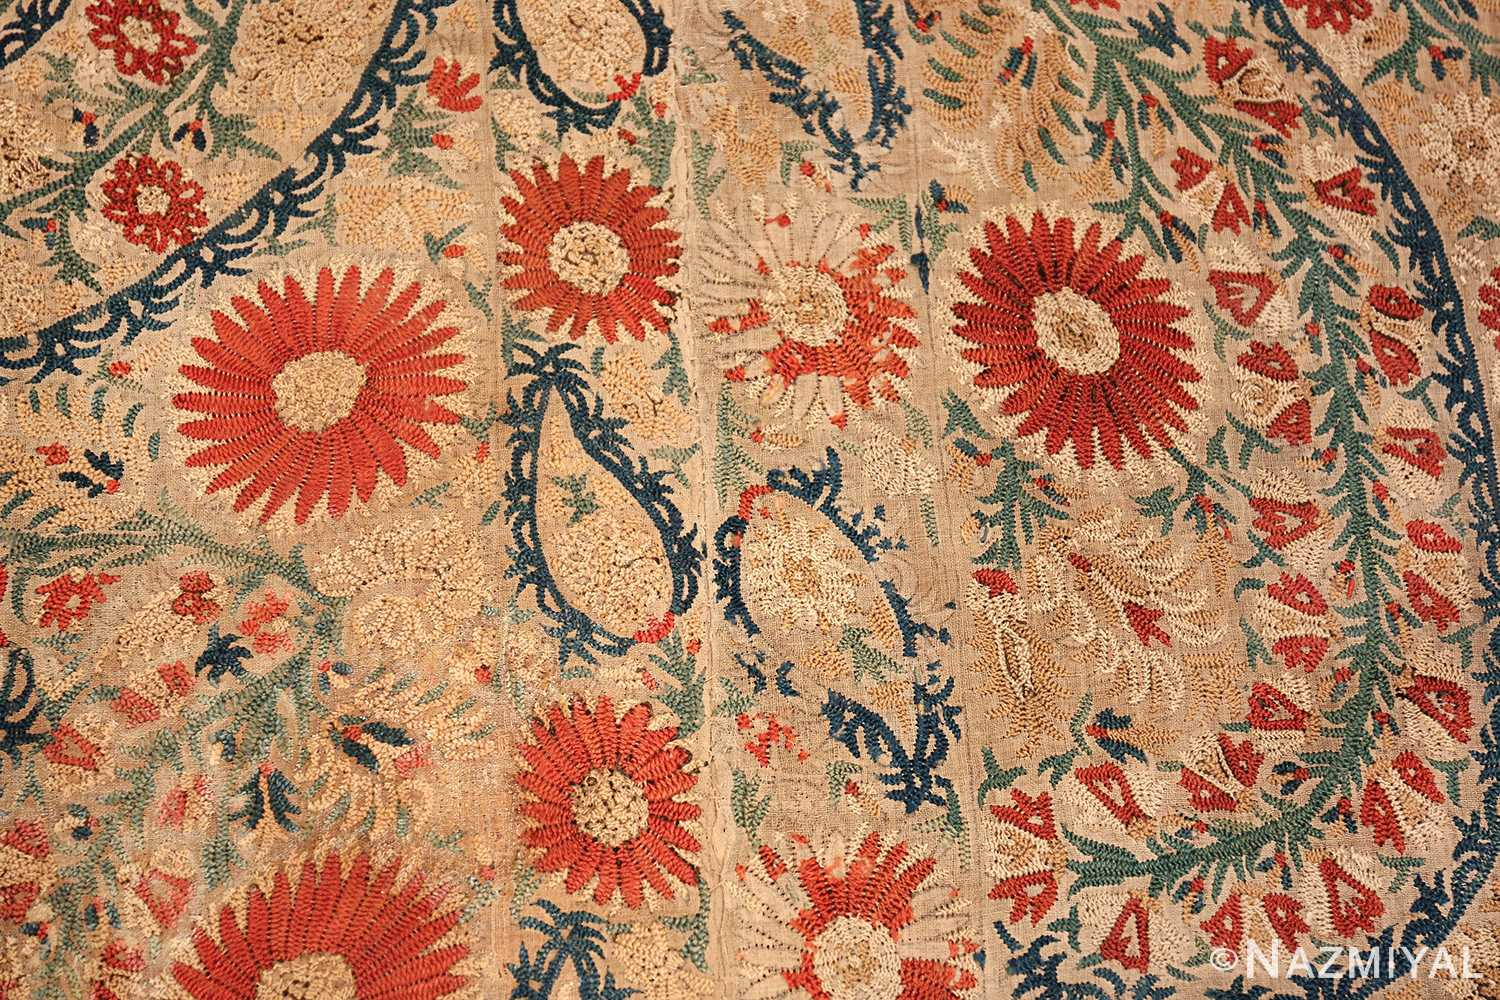 Antique 17th Century Ottoman Textile 41498 Closeup Texture Nazmiyal